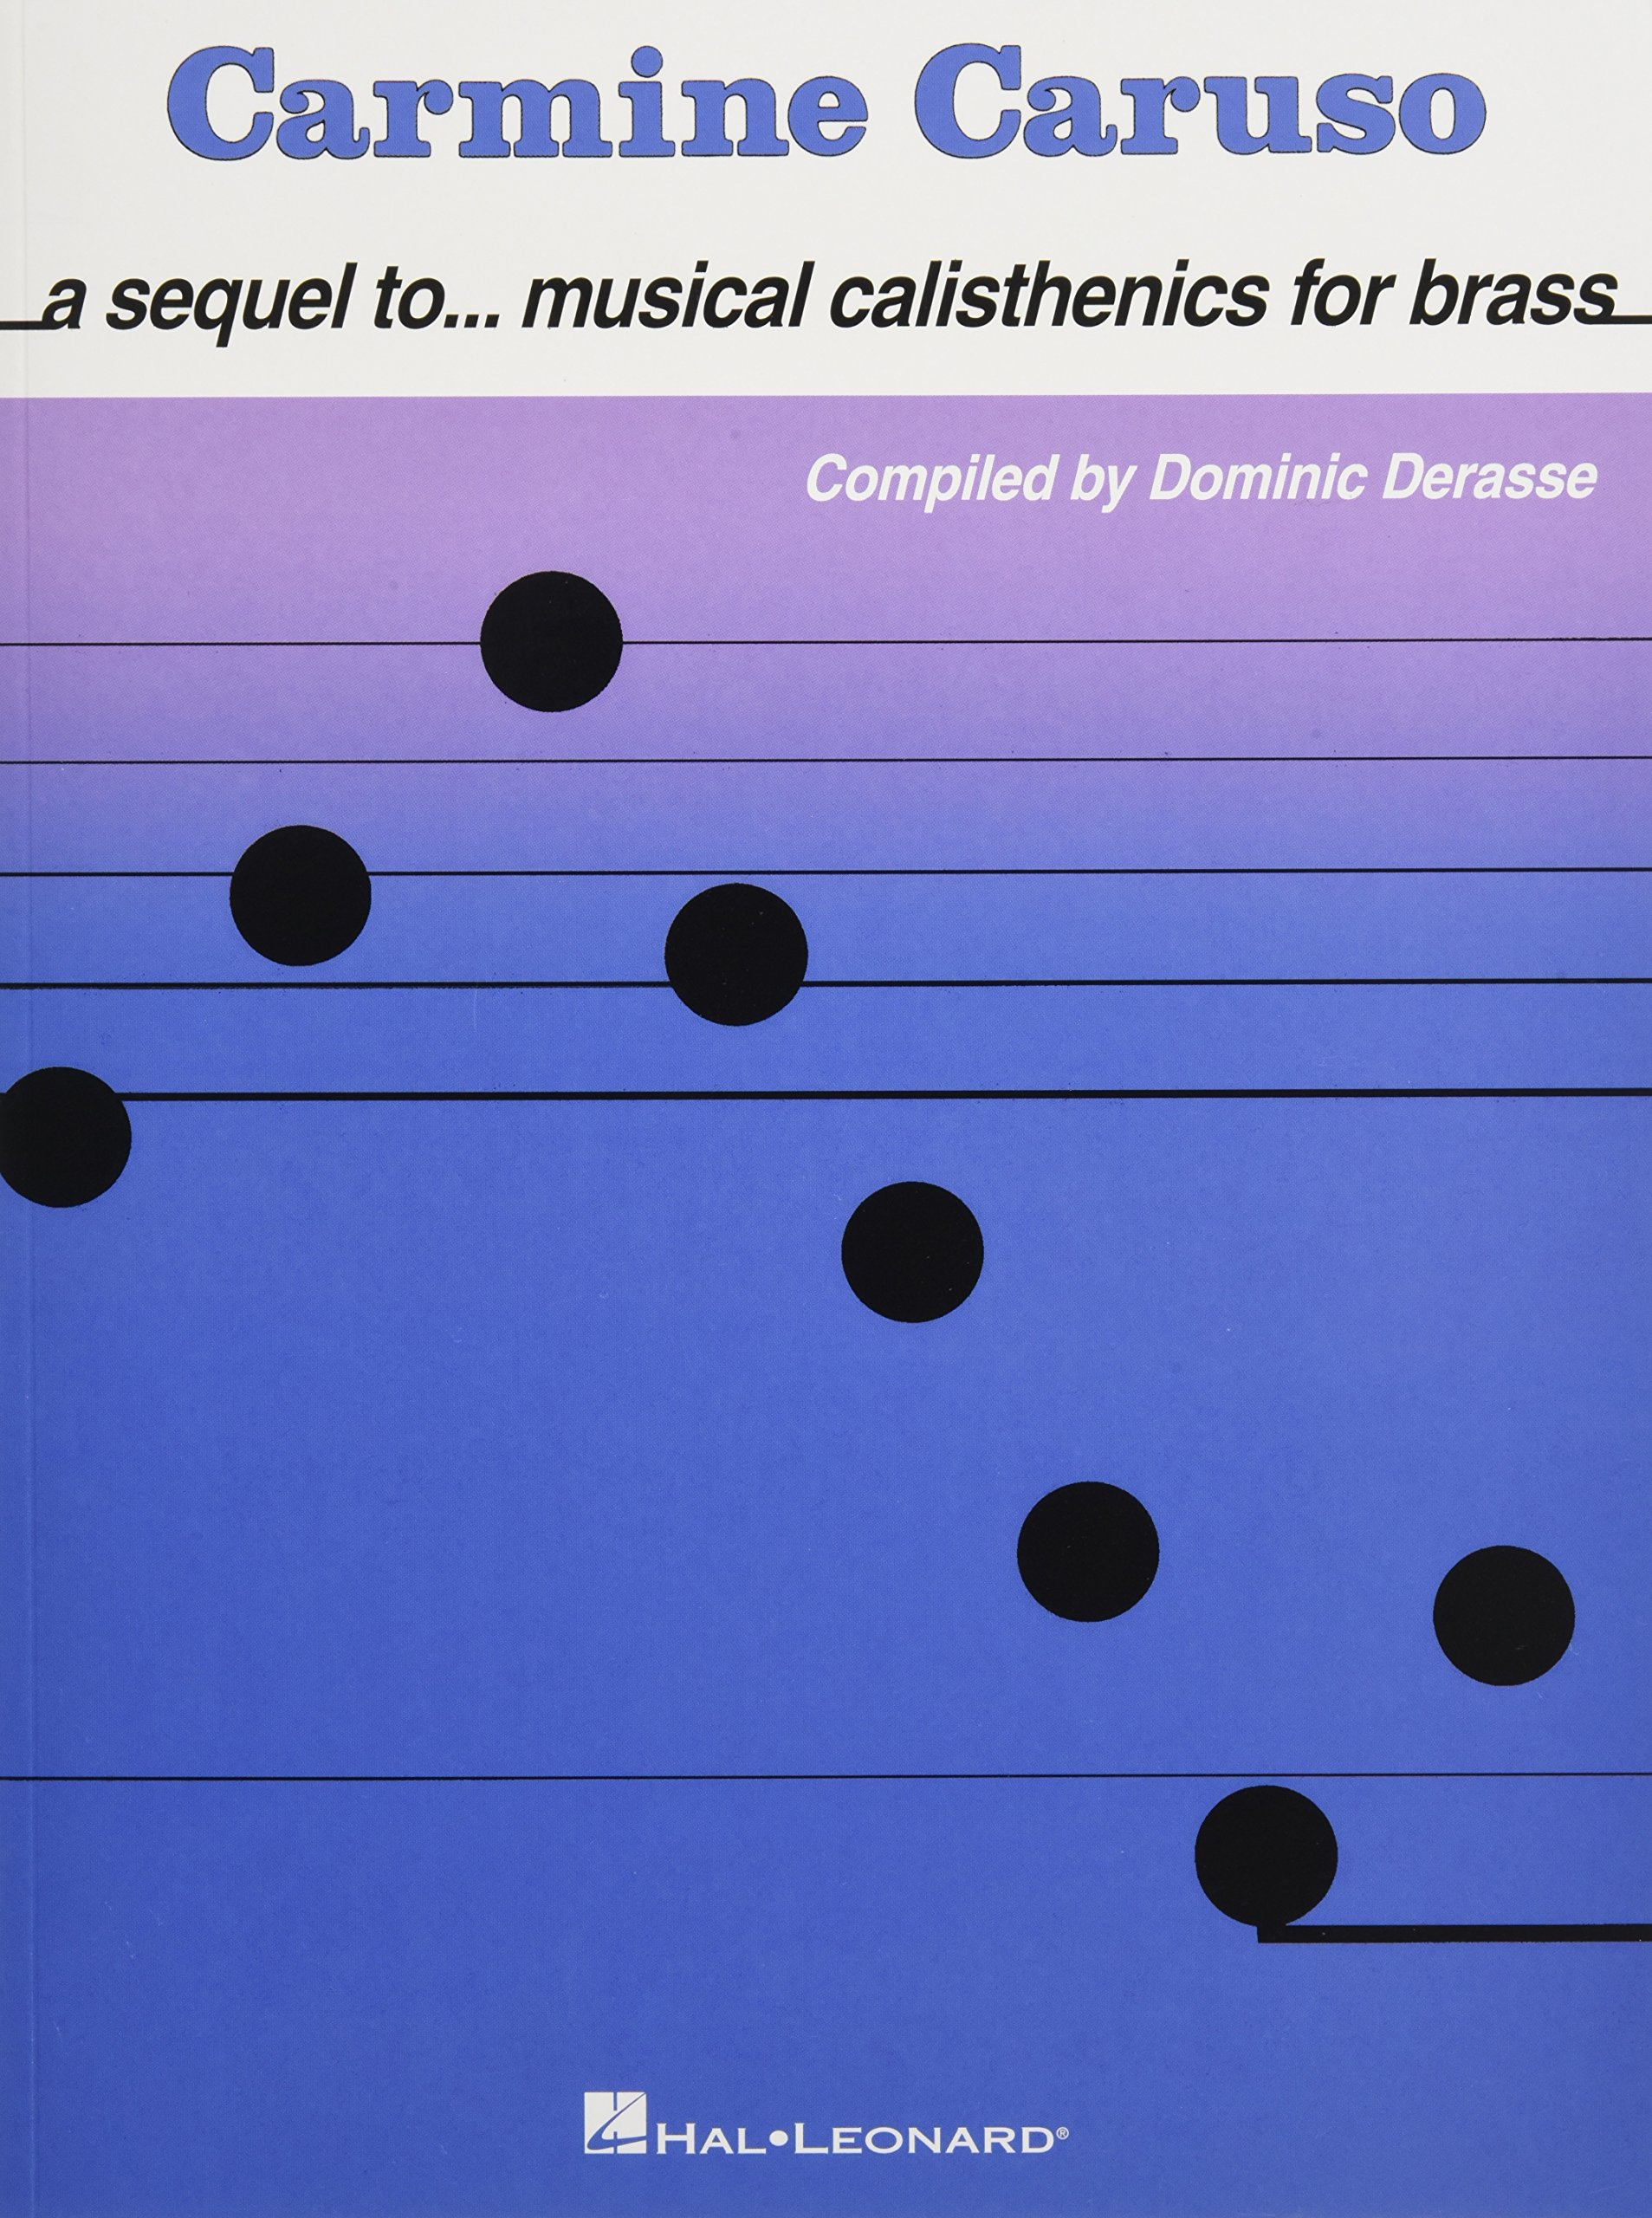 Download Carmine Caruso - A Sequel to Musical Calisthenics for Brass ebook